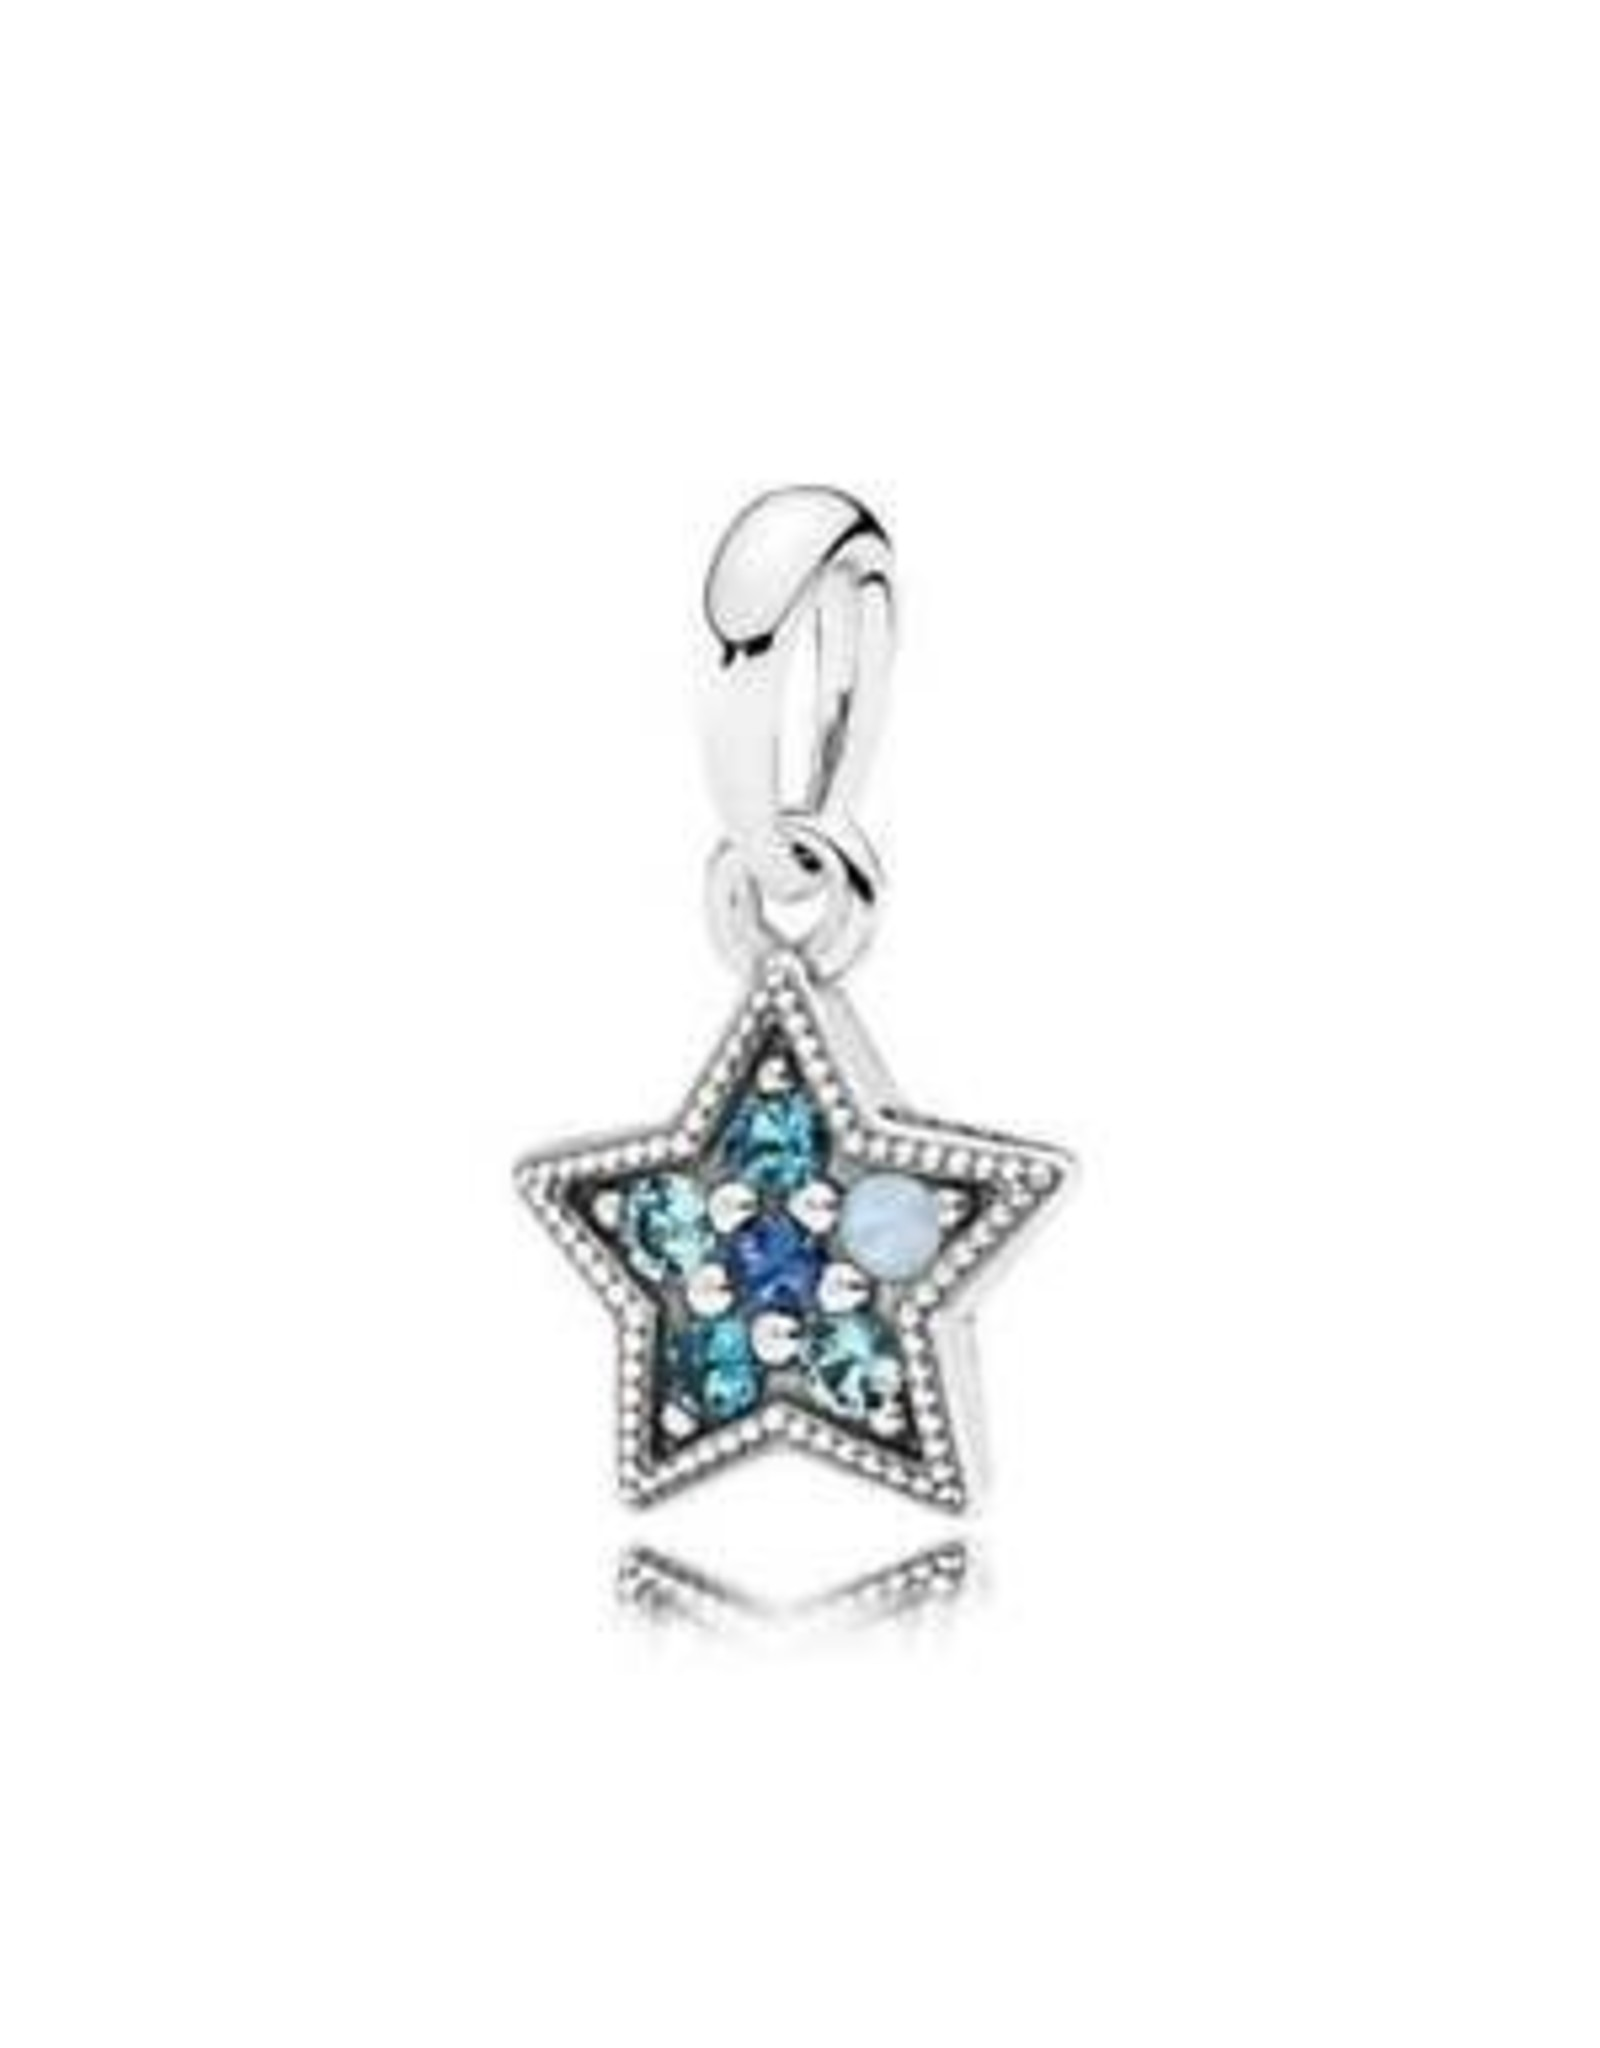 Pandora Pandora Star Pendant With Swiss Blue, Opalescent, Sky, And Royal Blue Crystals